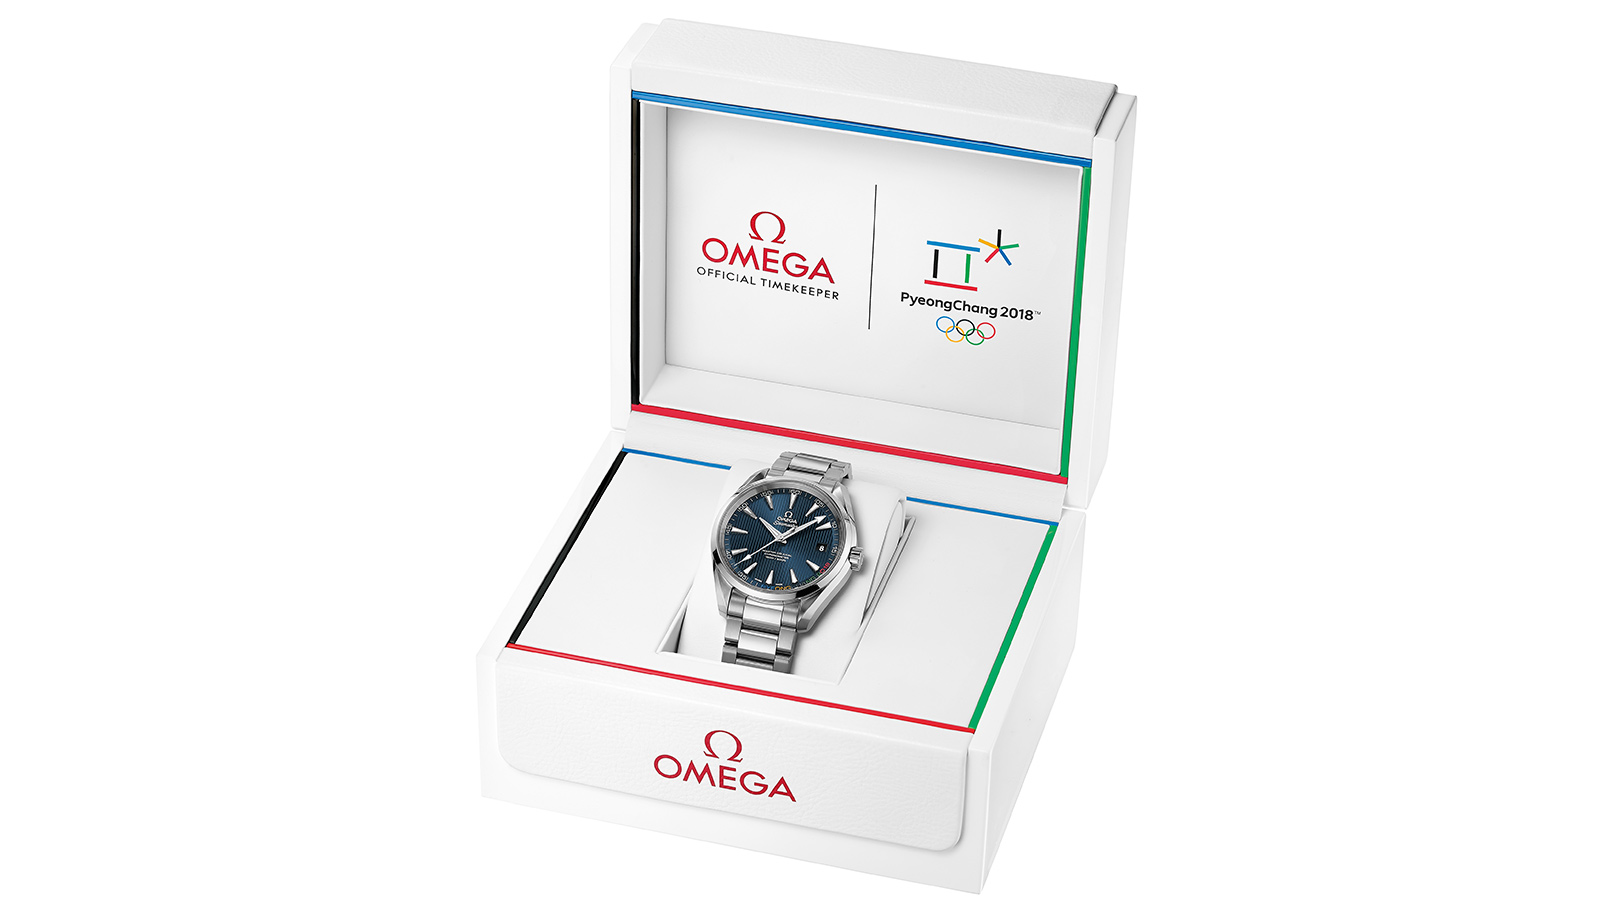 Watch Omega OLYMPIC GAMES COLLECTION Pyeongchang 2018 Limited Edition steel on steel in a Winter Olympics themed box